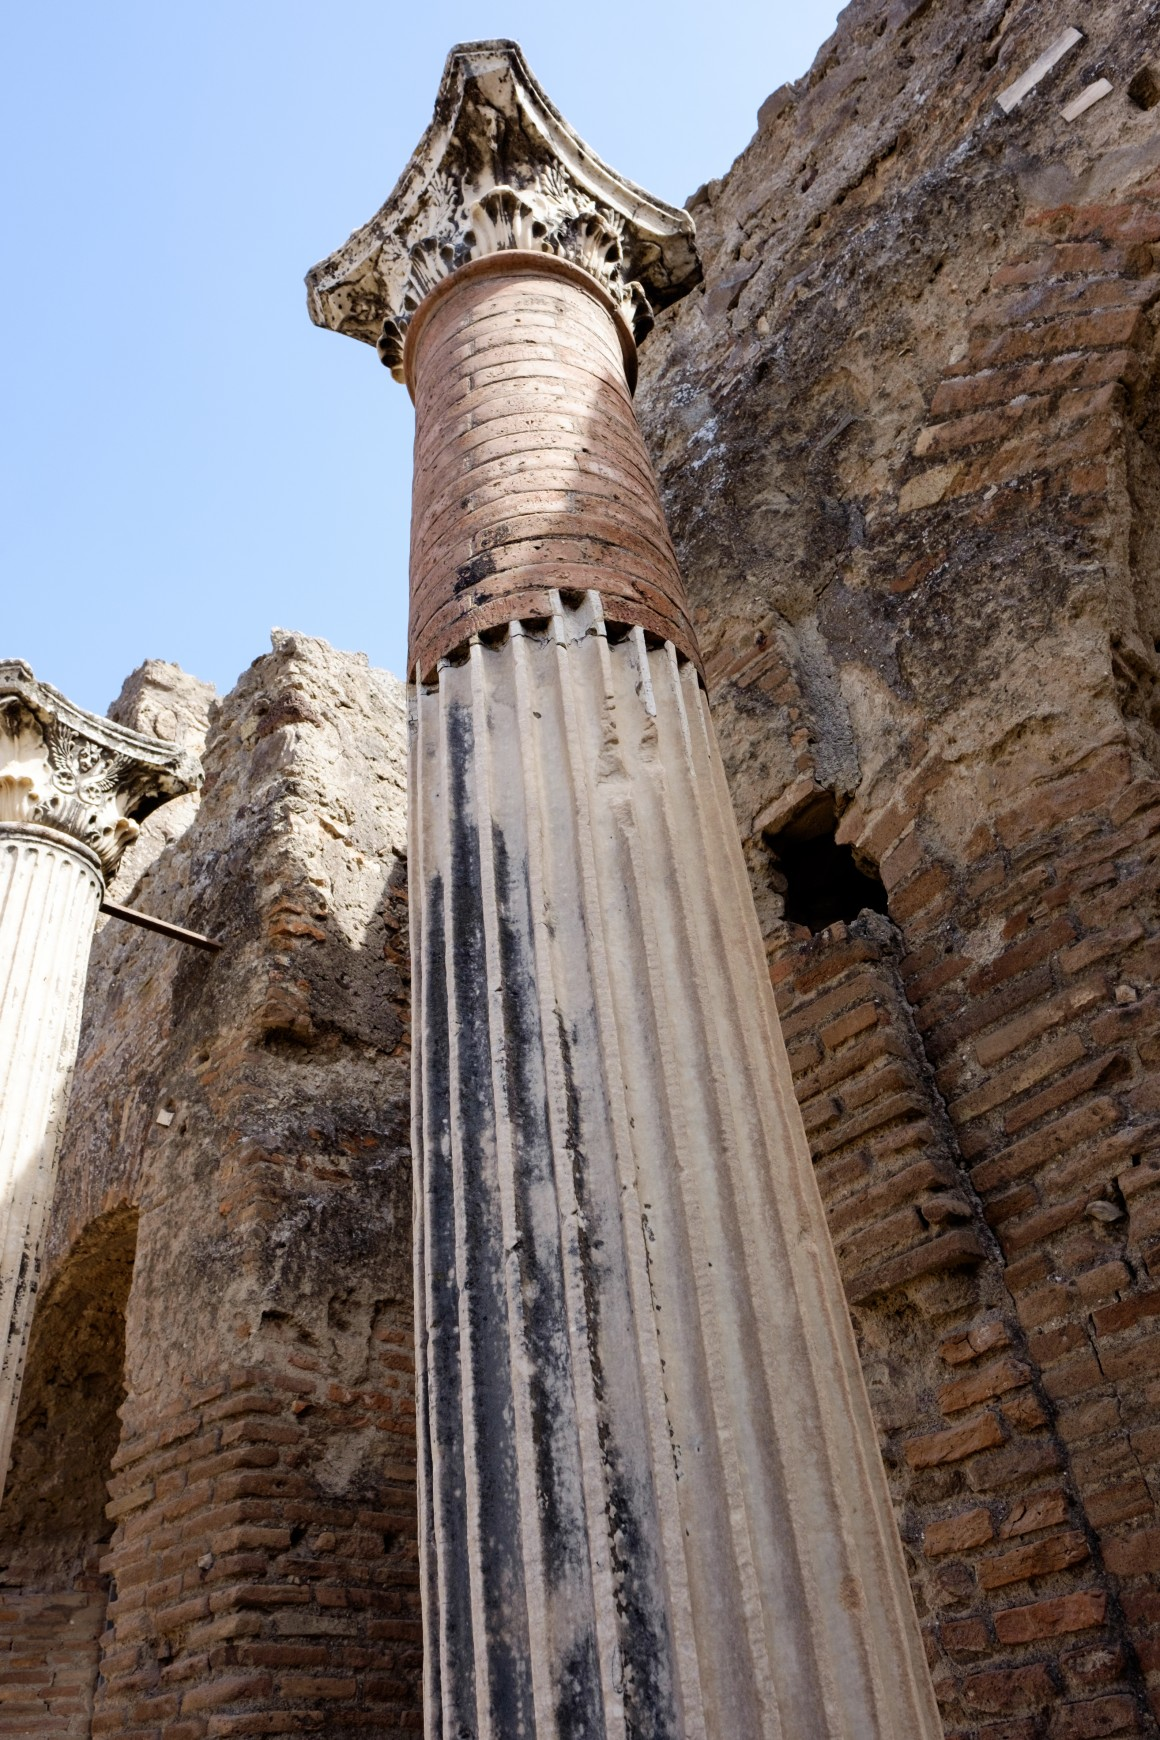 A column that was damaged in the earthquake 17 years before the erruption had been repaired.